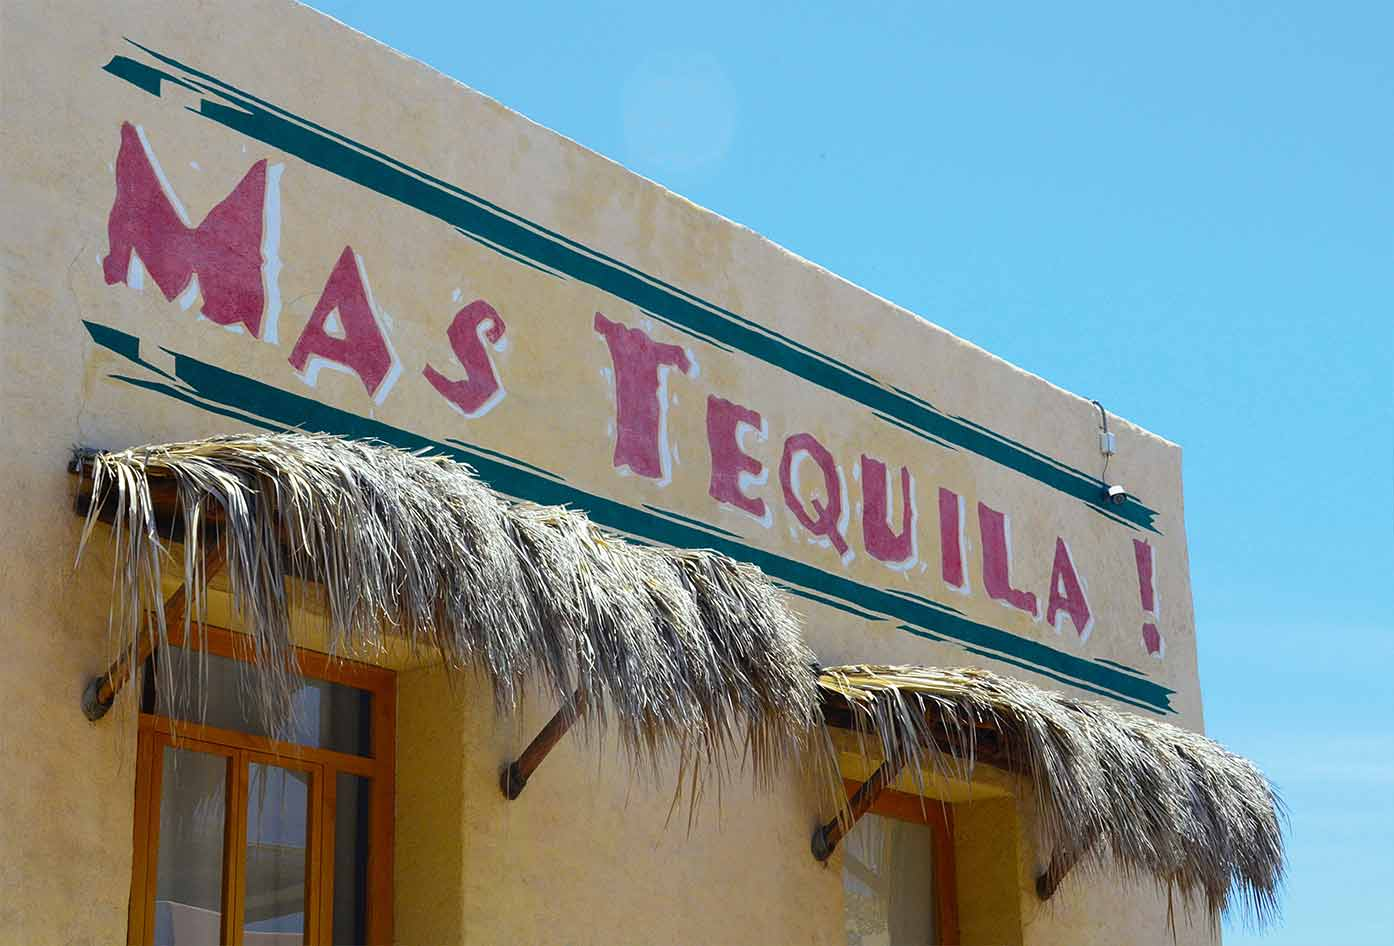 tequila cabo san lucas